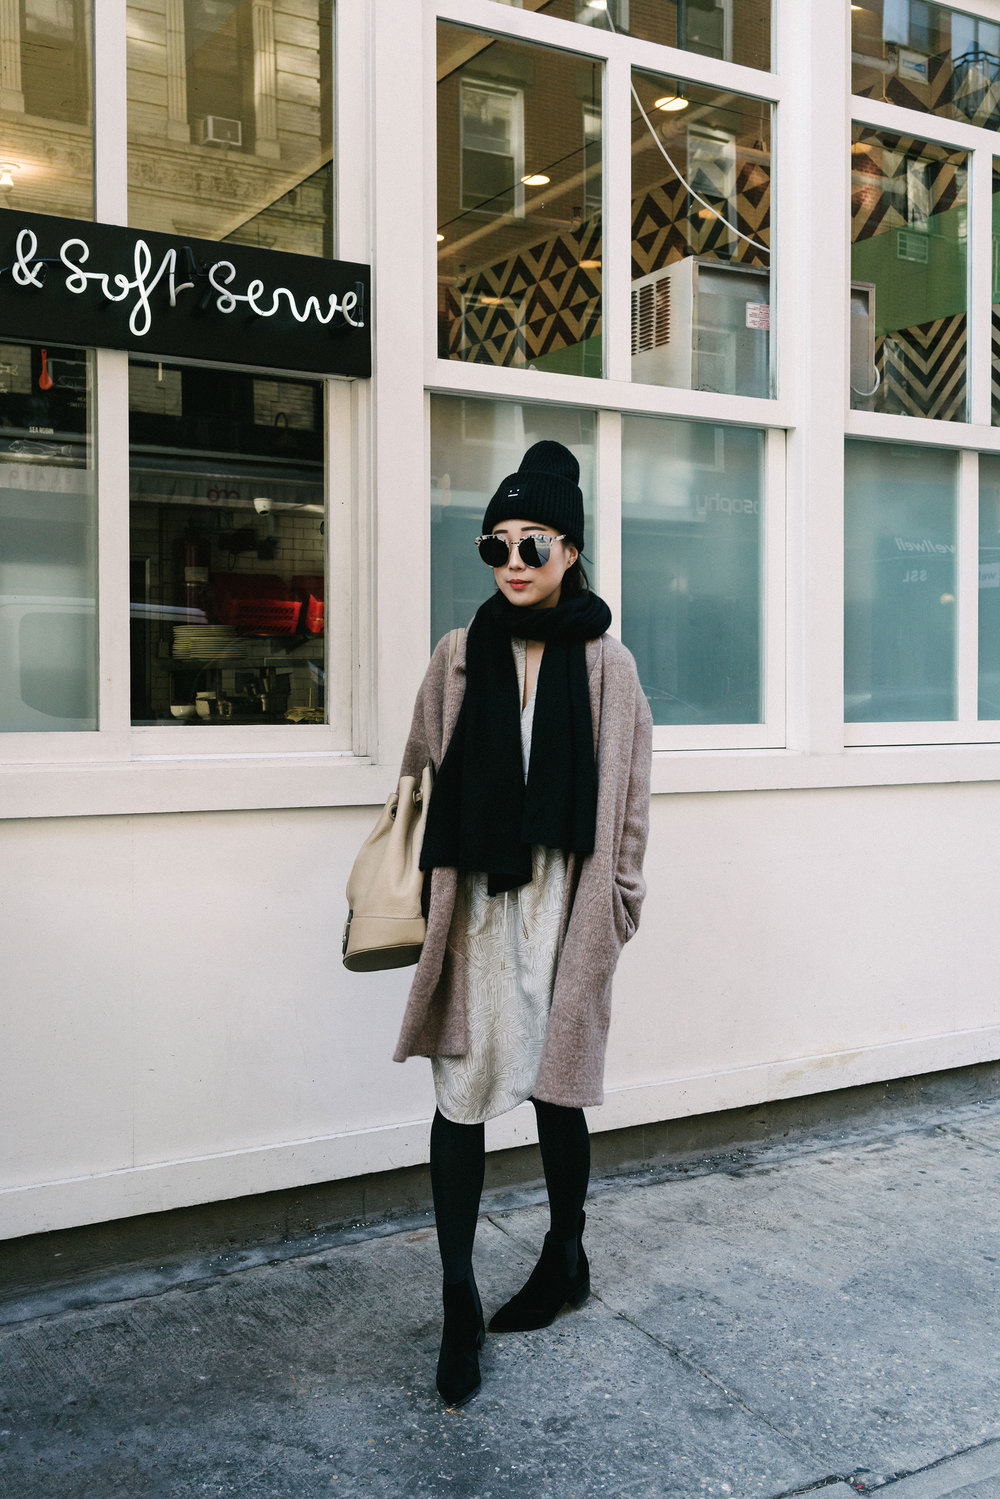 Pas de Calais Coat, Maiyet Dress, Loeffler Randall Boots, Ghurka Bag, COS Scarf, Acne Studios Hat, Gentle Monster Sunglasses